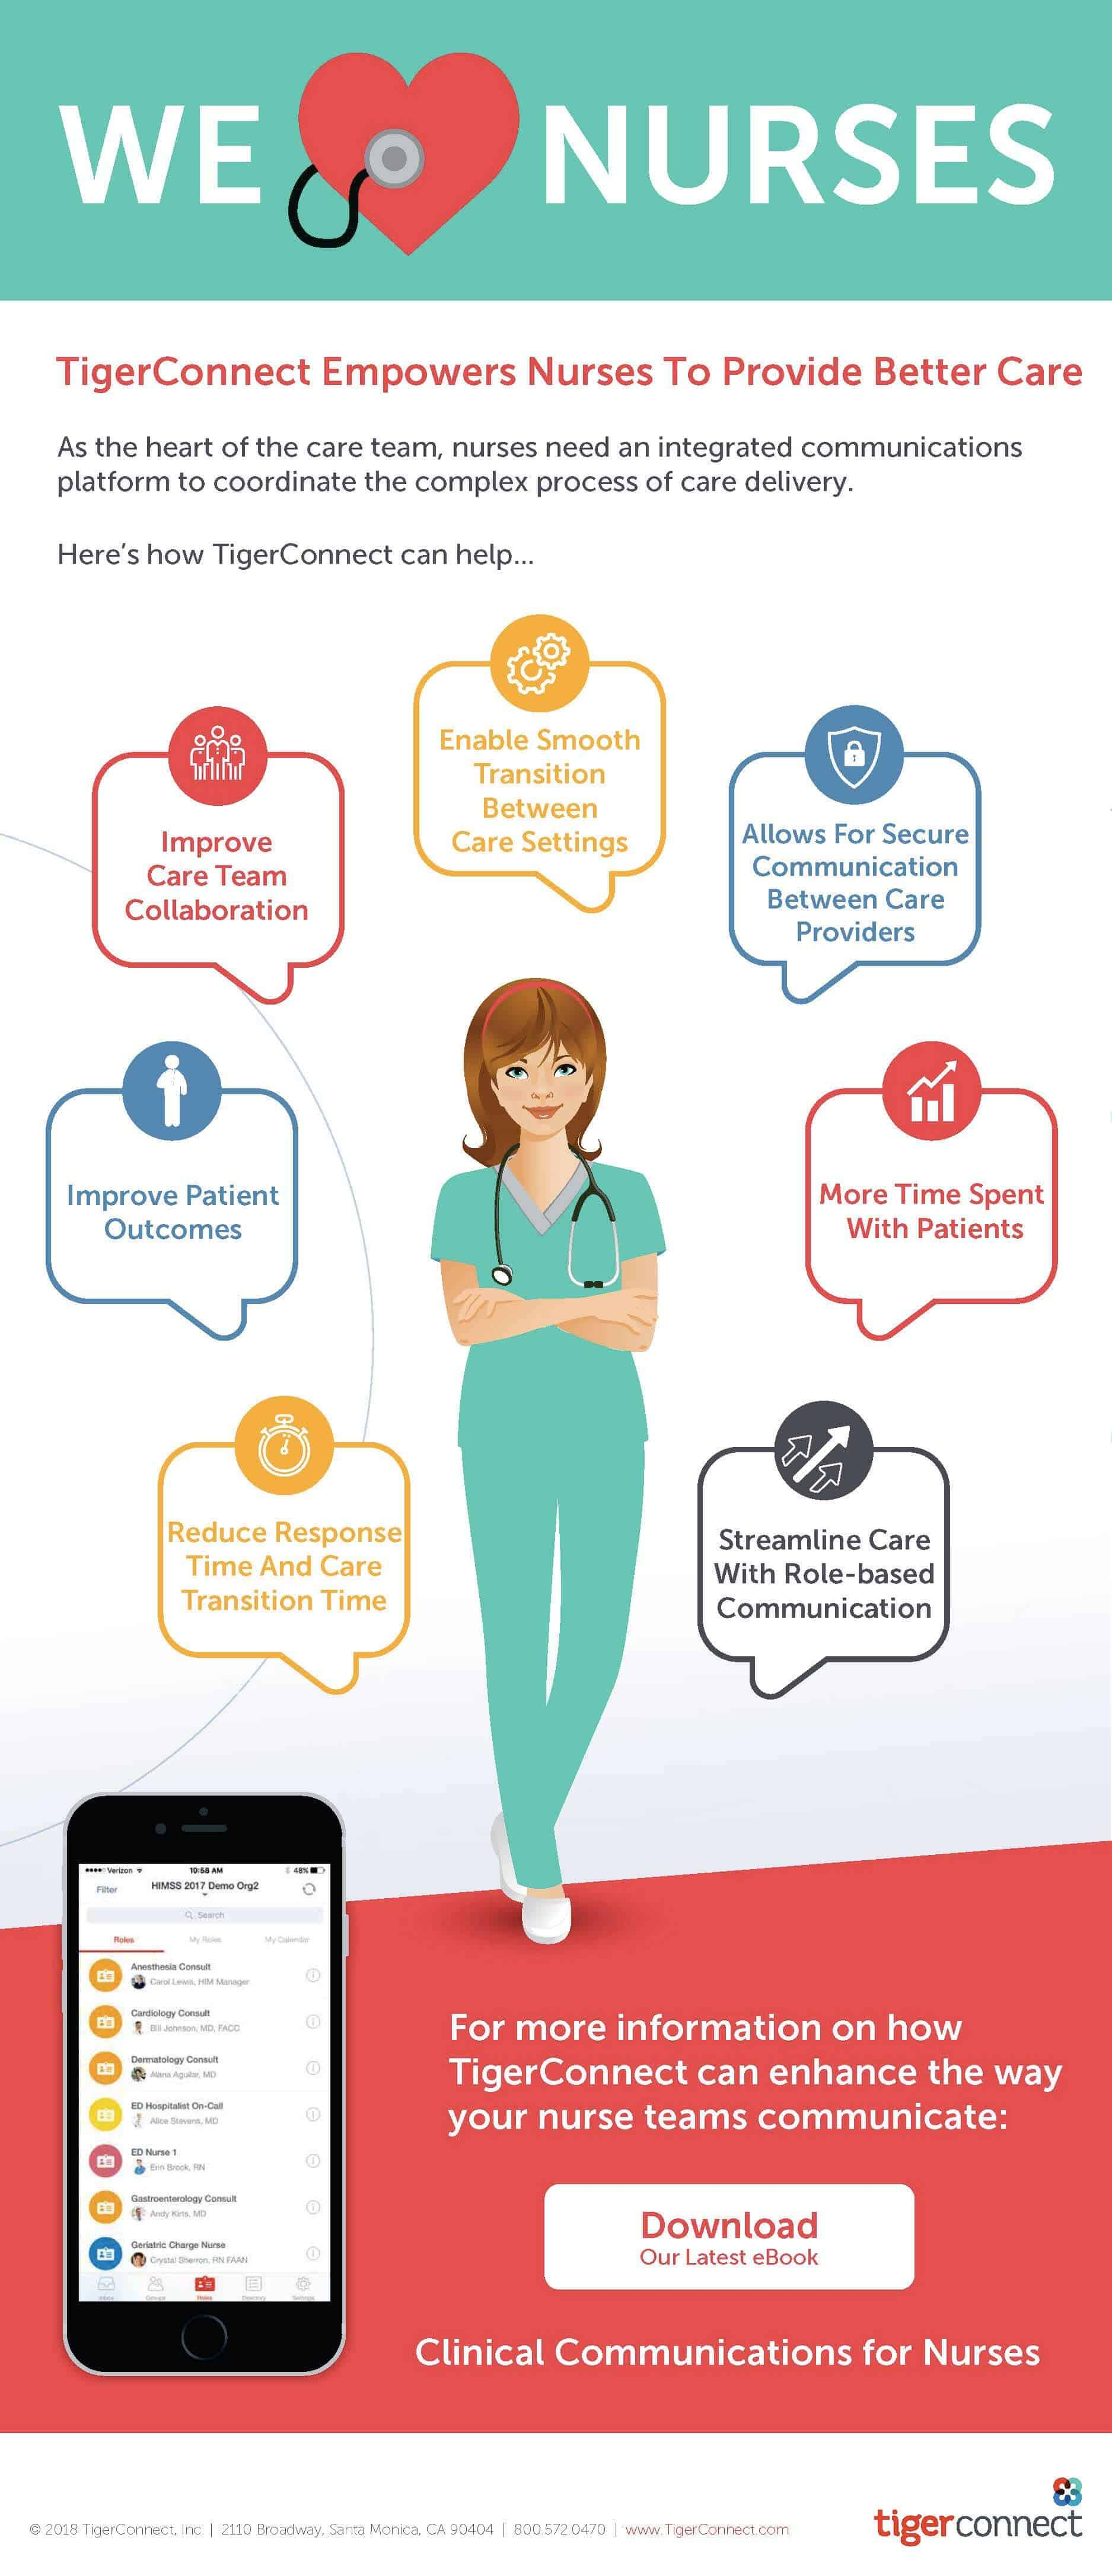 TigerConnect Empowers Nurses To Provide Better Care Infographic Preview